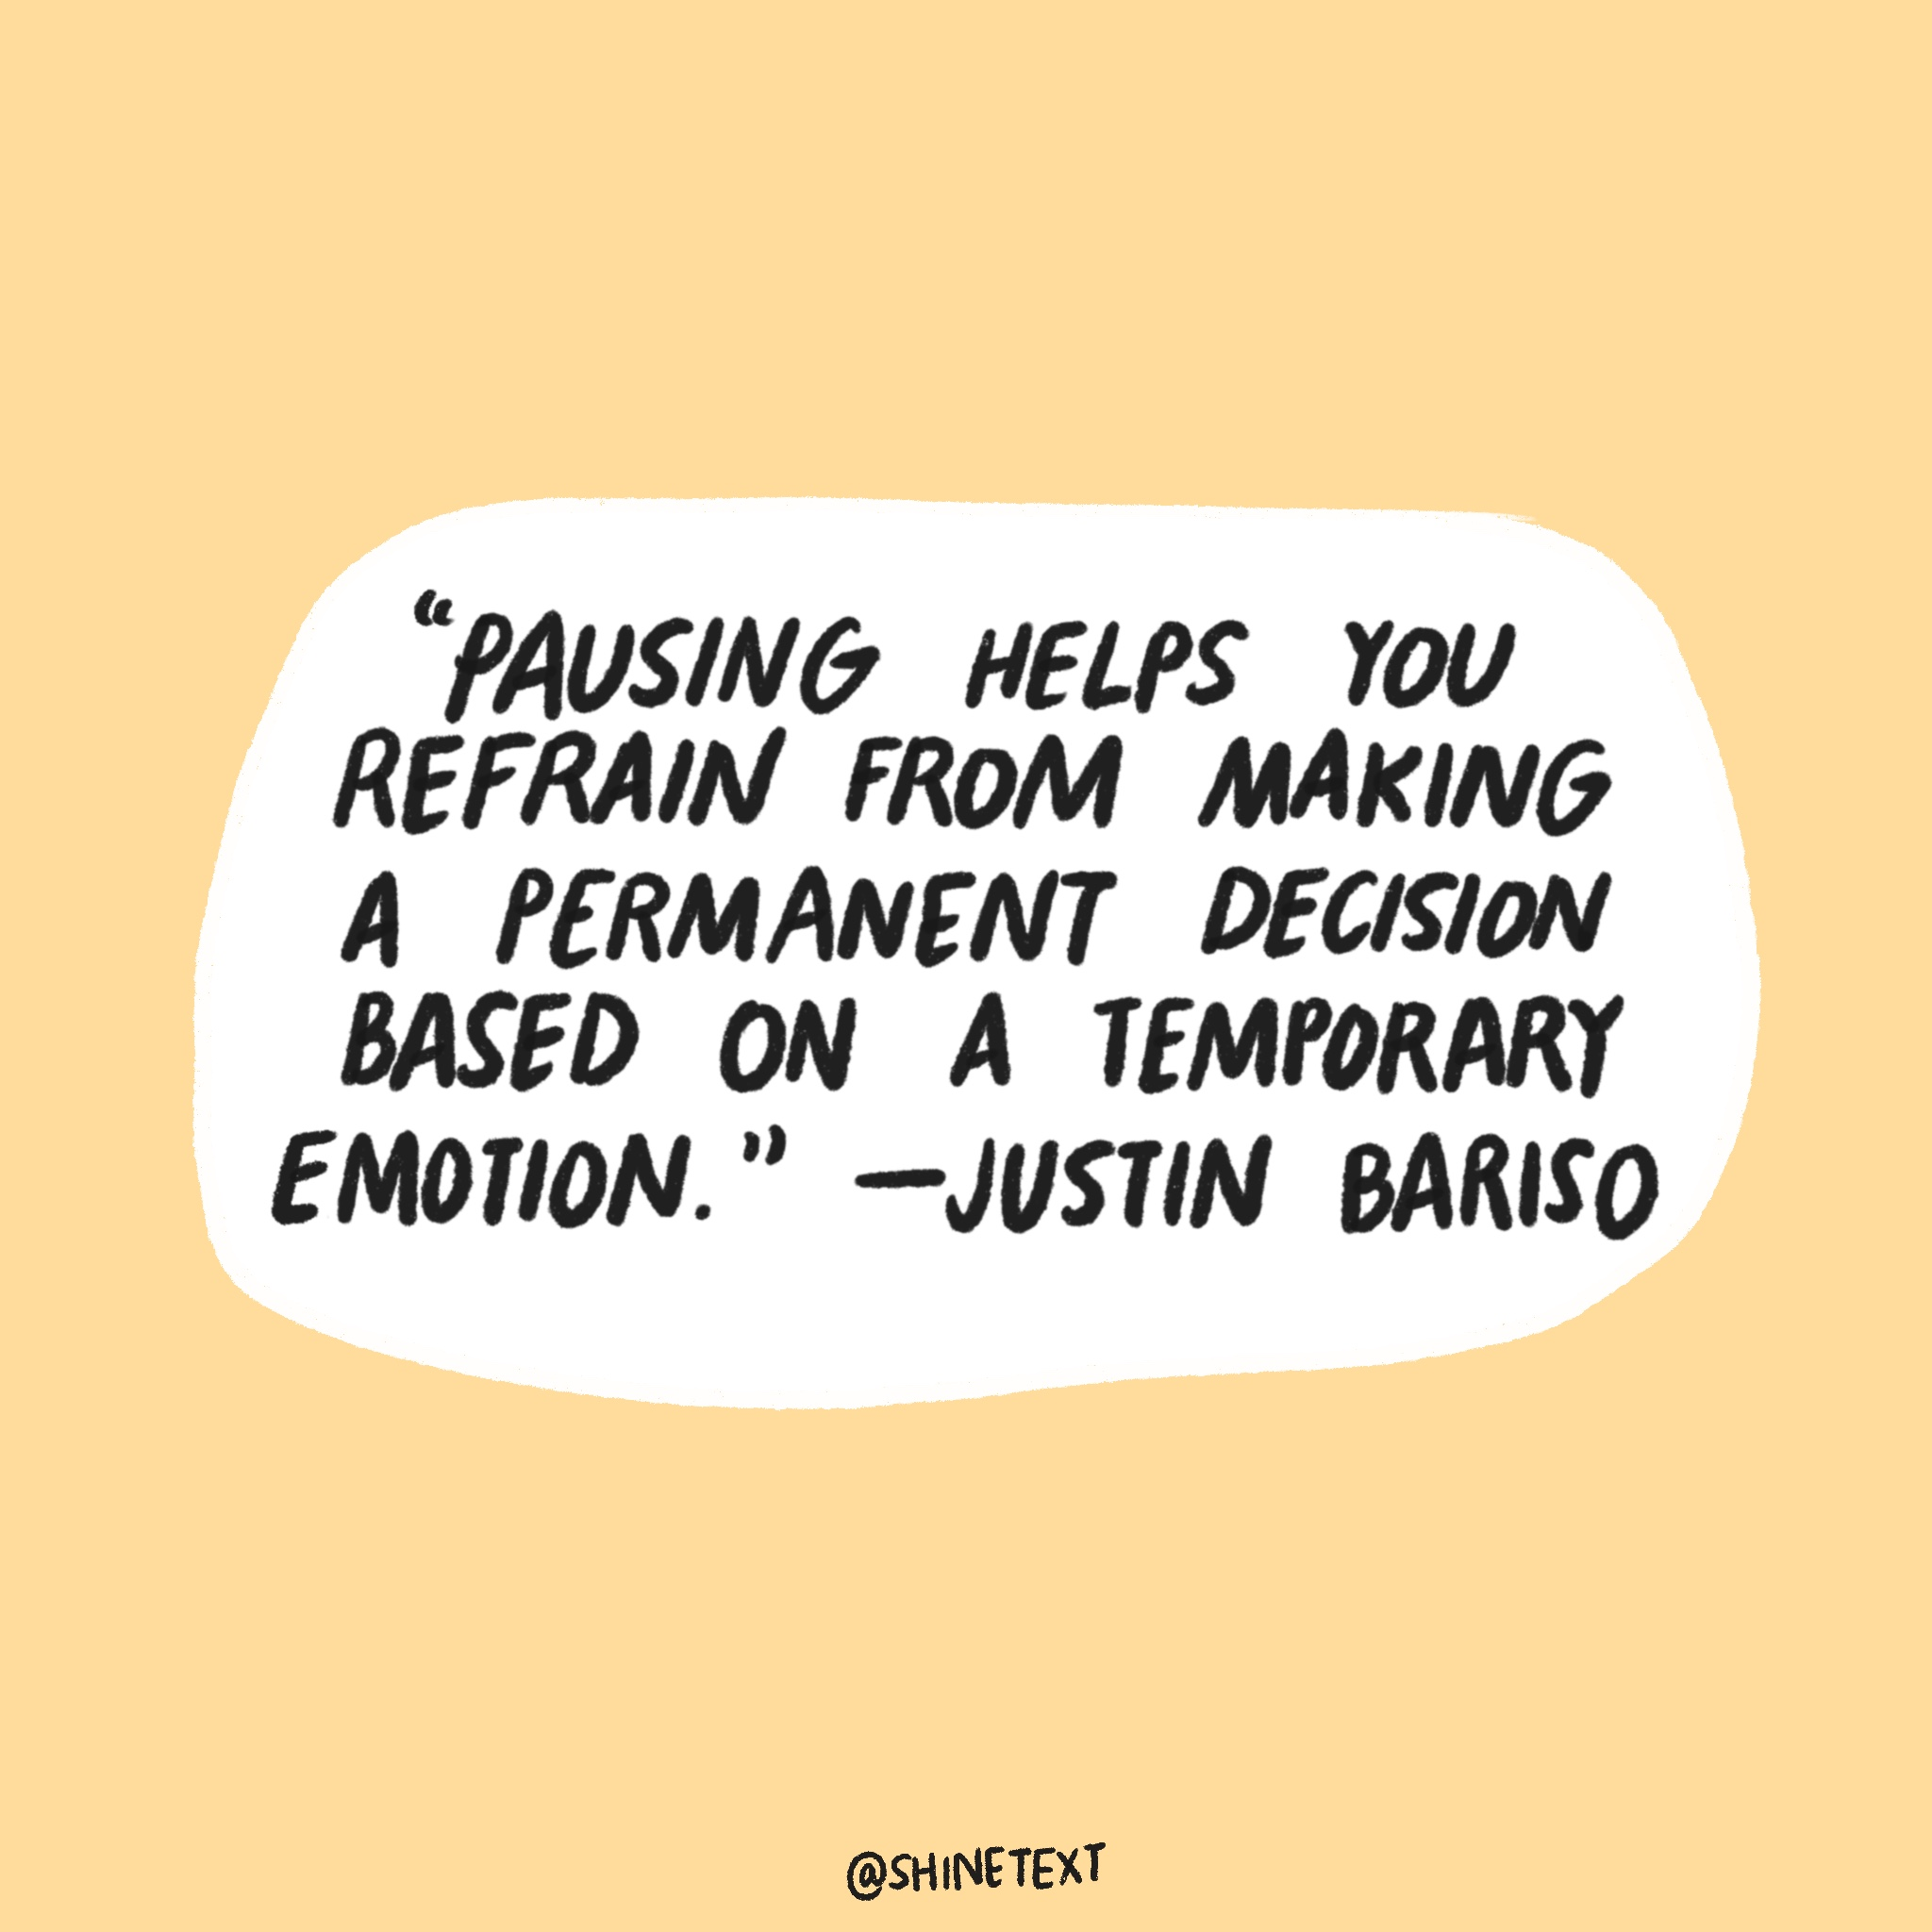 Pausing helps you refrain from making a permanent decision based on a temporary emotion